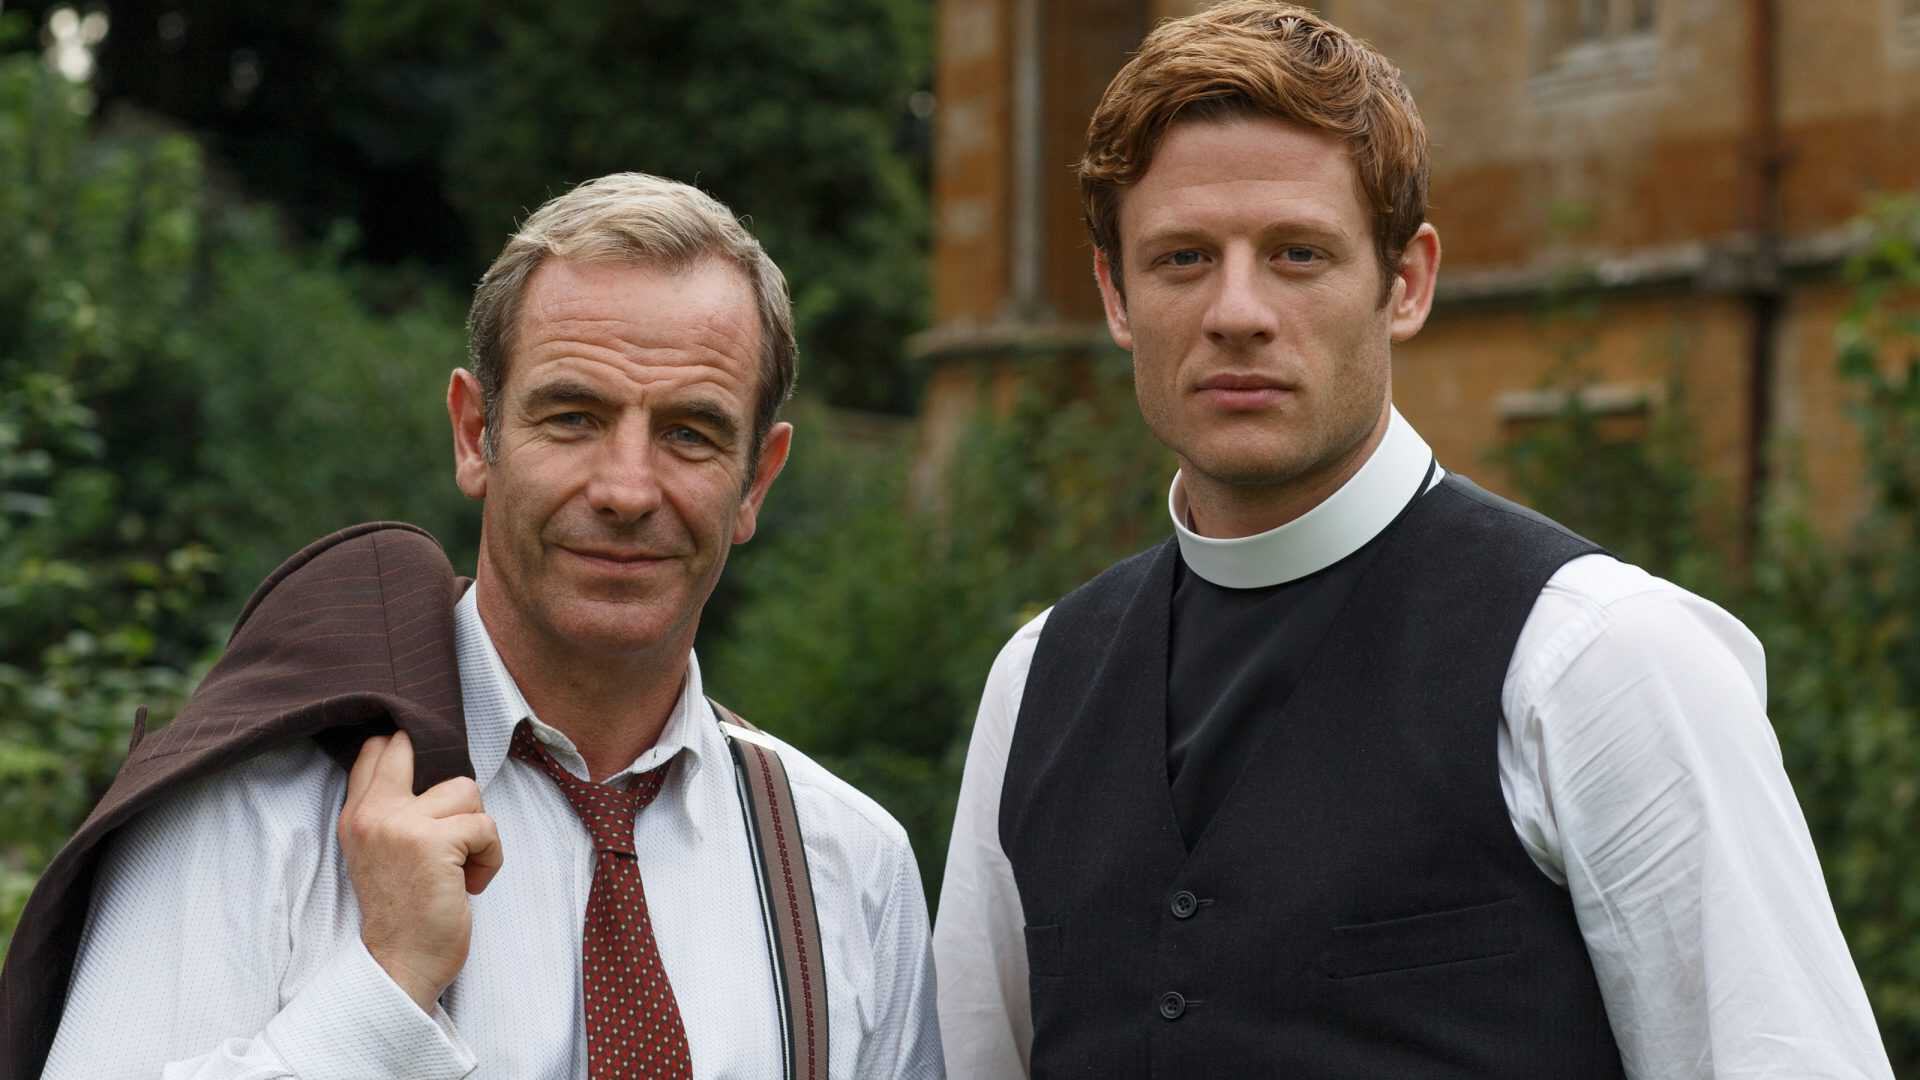 A running vicar detective is presented by pBS Masterpiece in 'Grantchester'